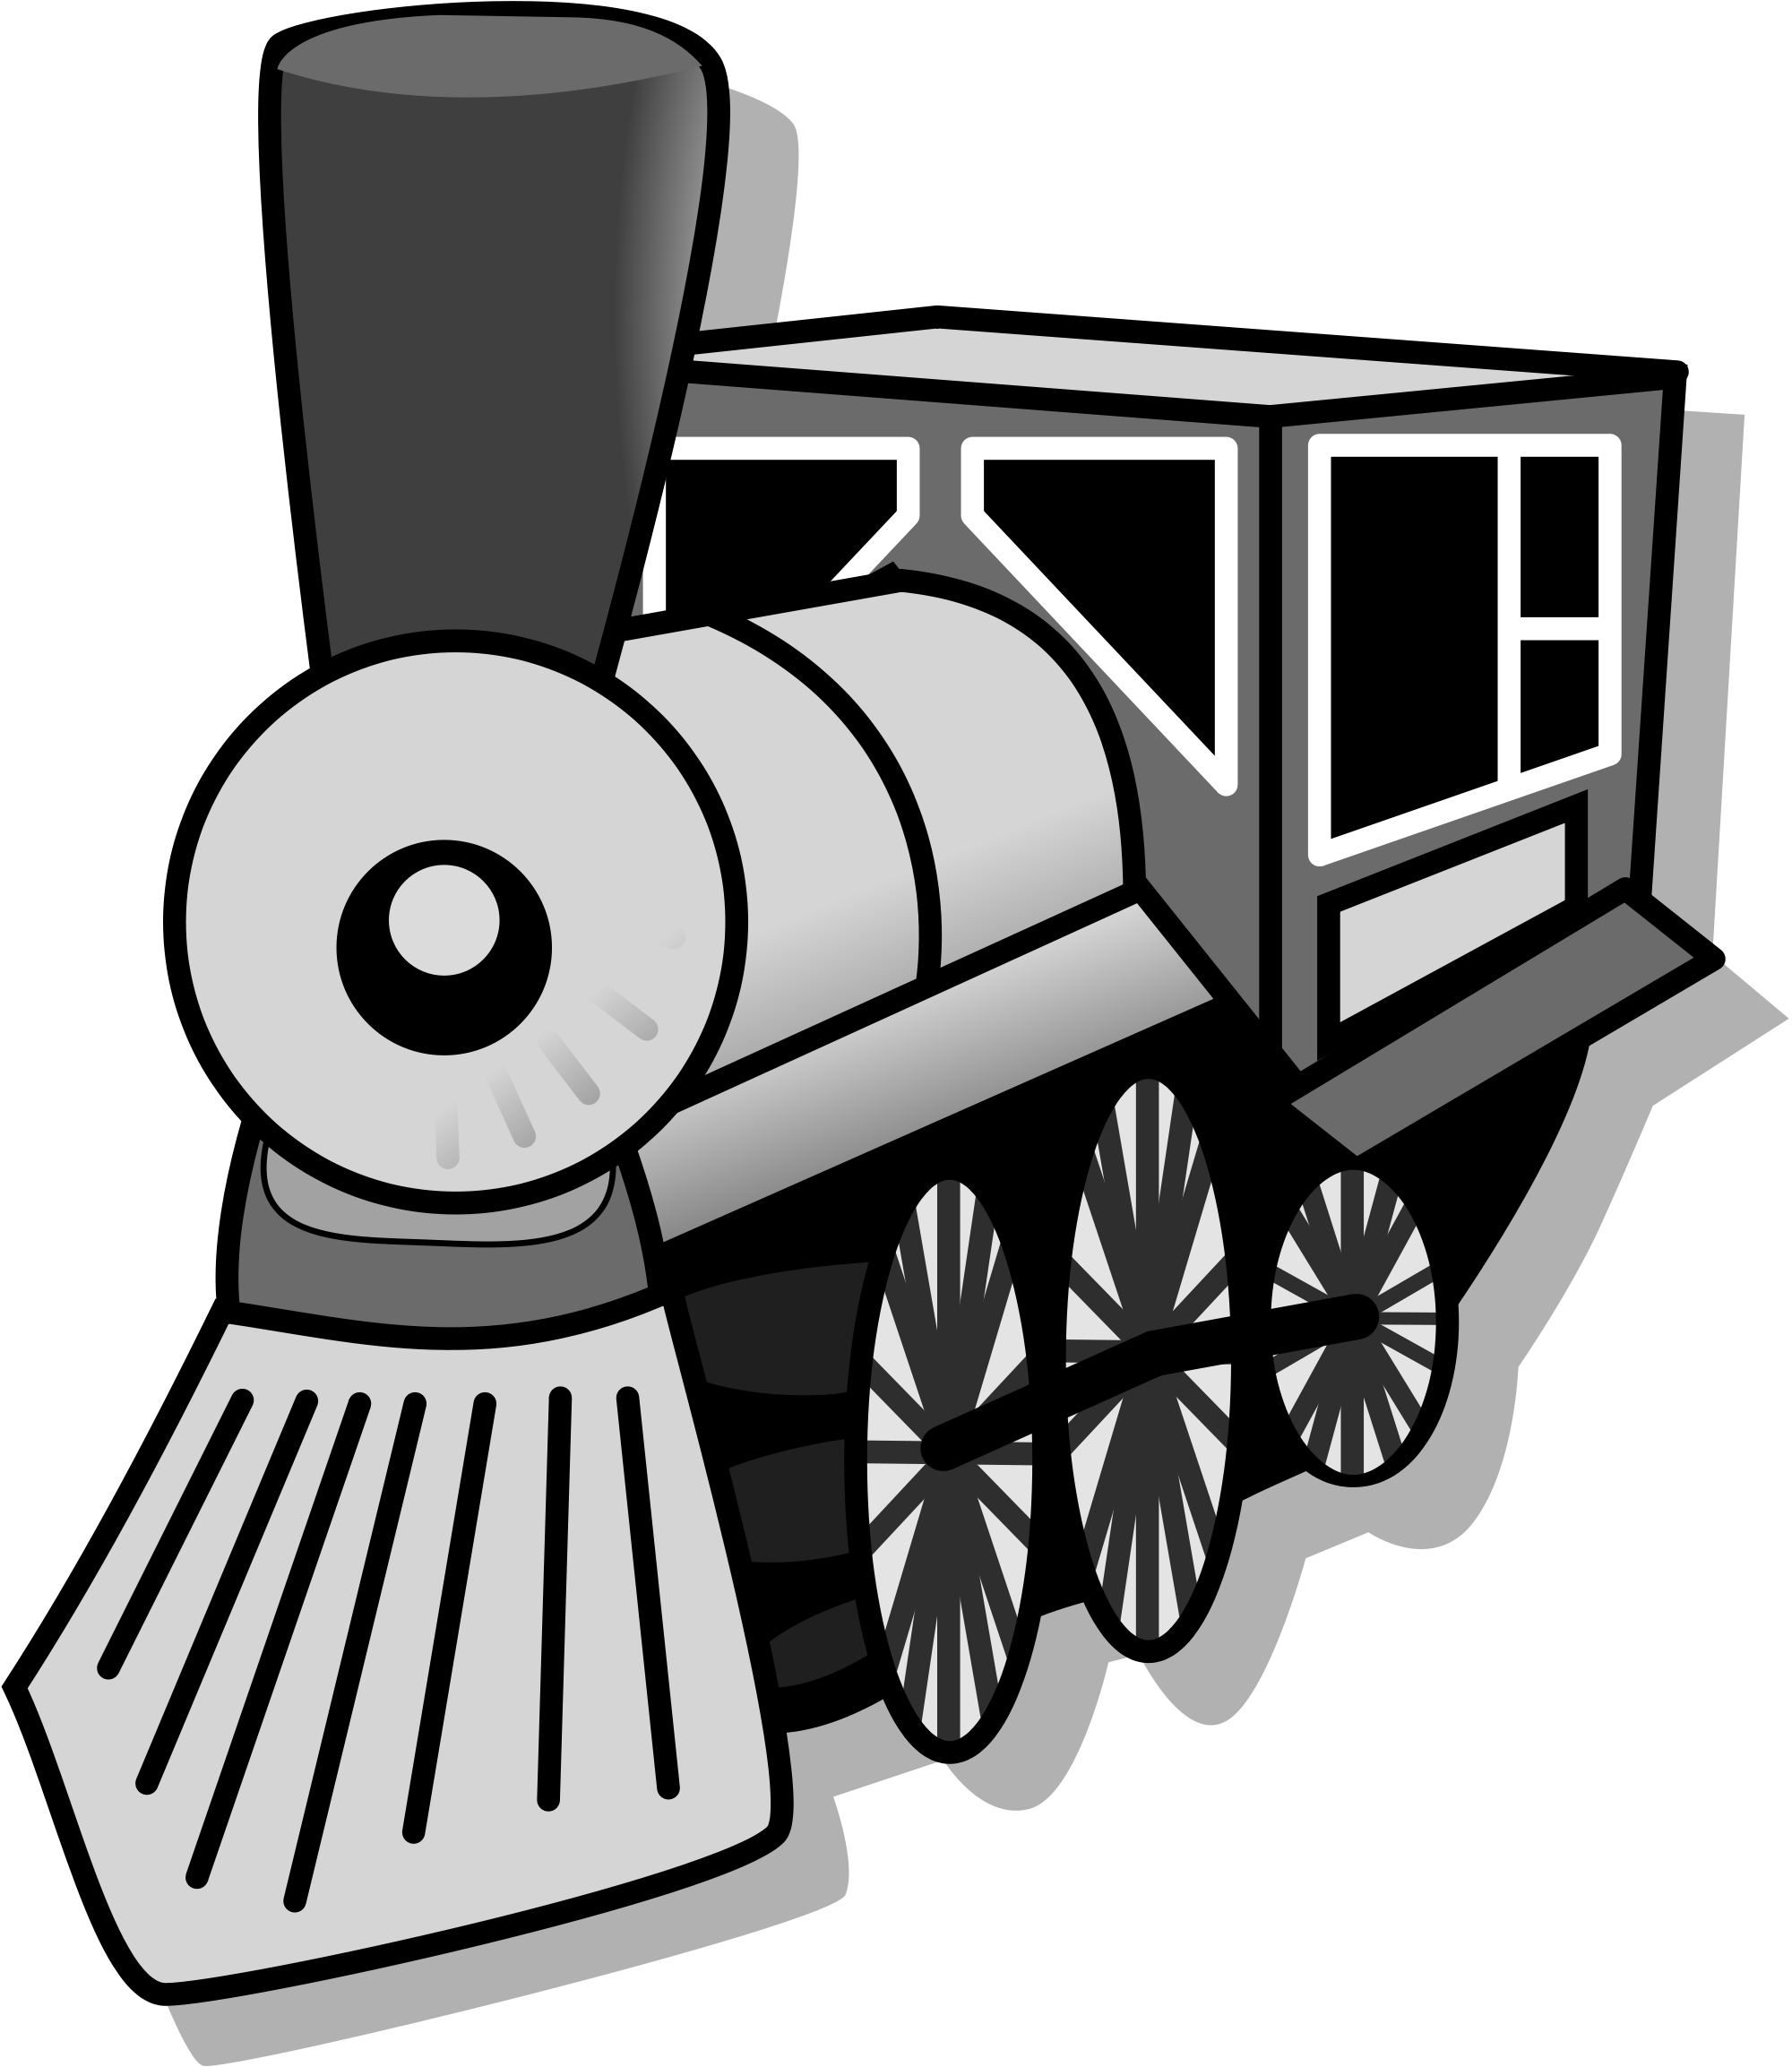 Locomotive clipart kereta api Commons svg icon File:Train Open